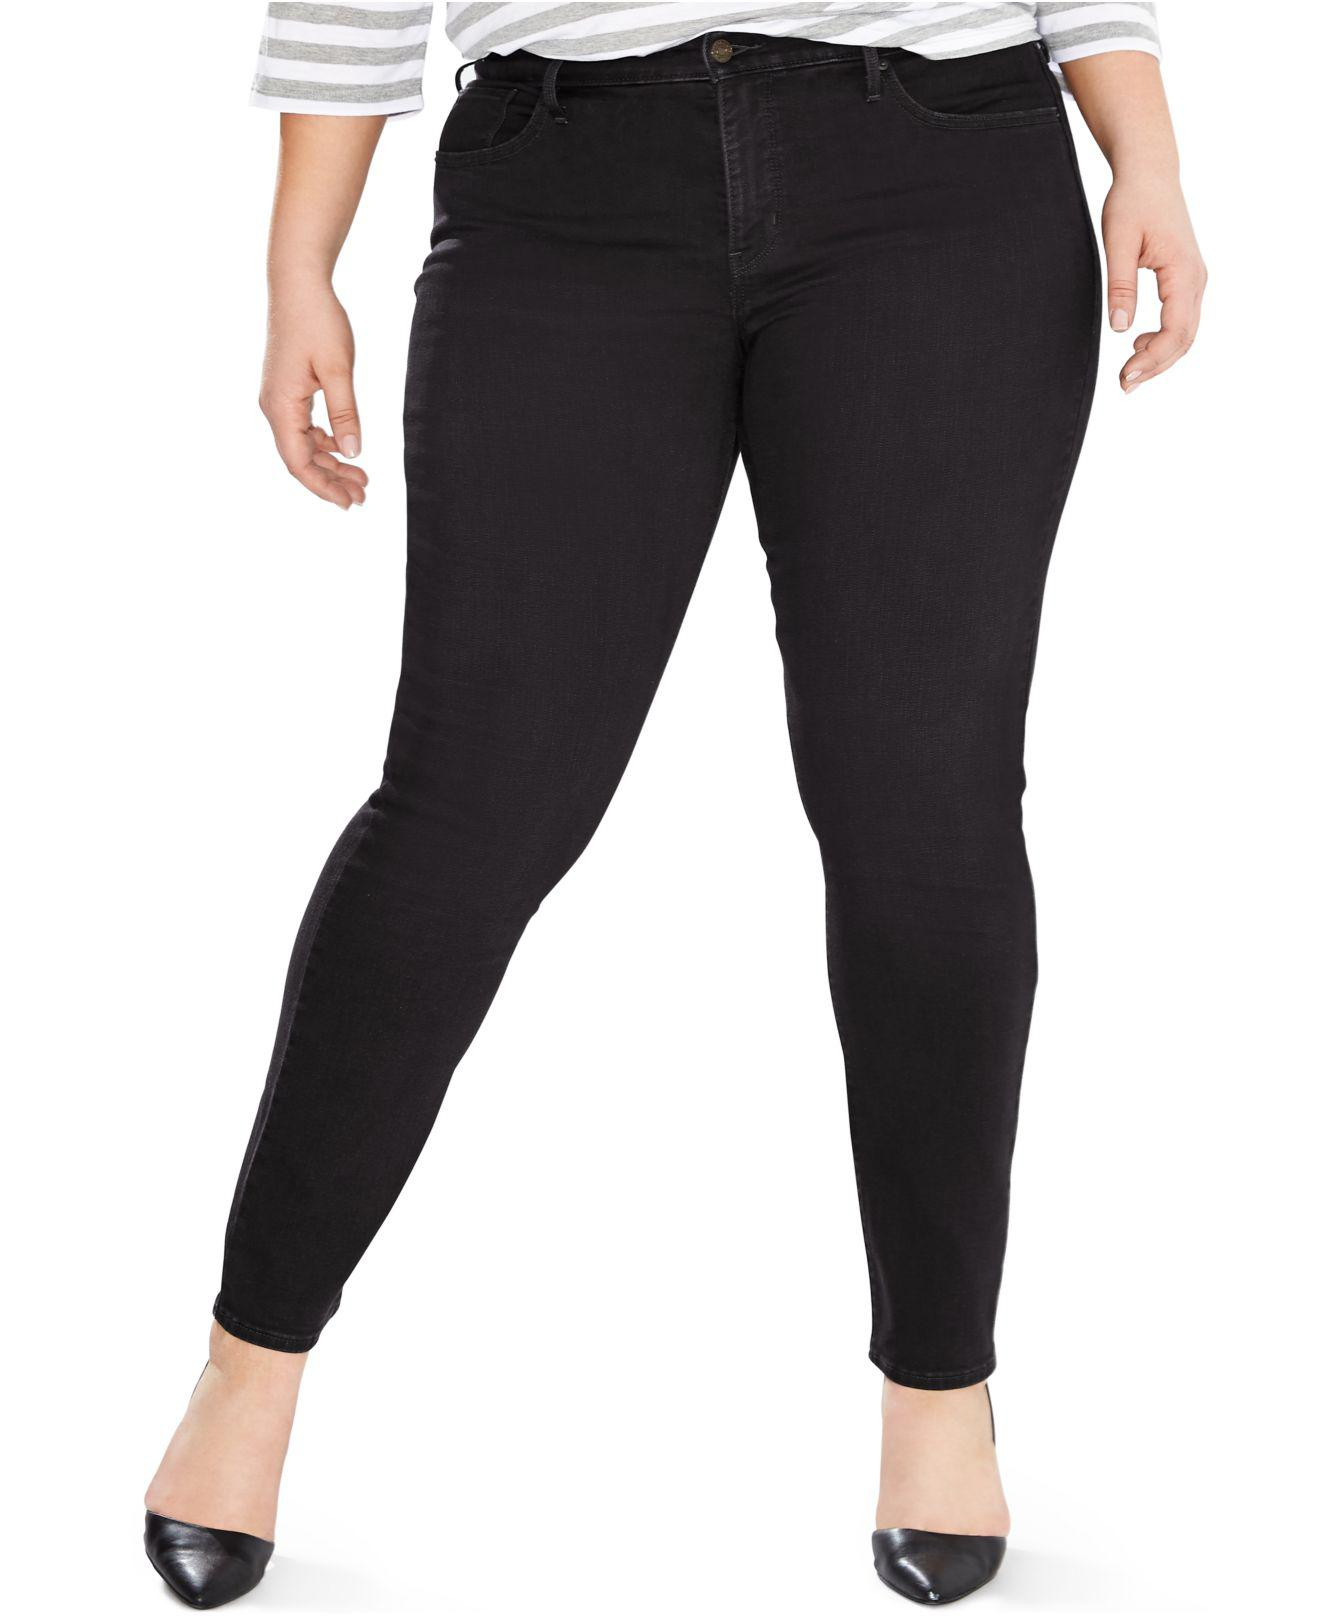 520b44948ce Lyst - Levi s Plus Size 311 Shaping Skinny Jeans in Black